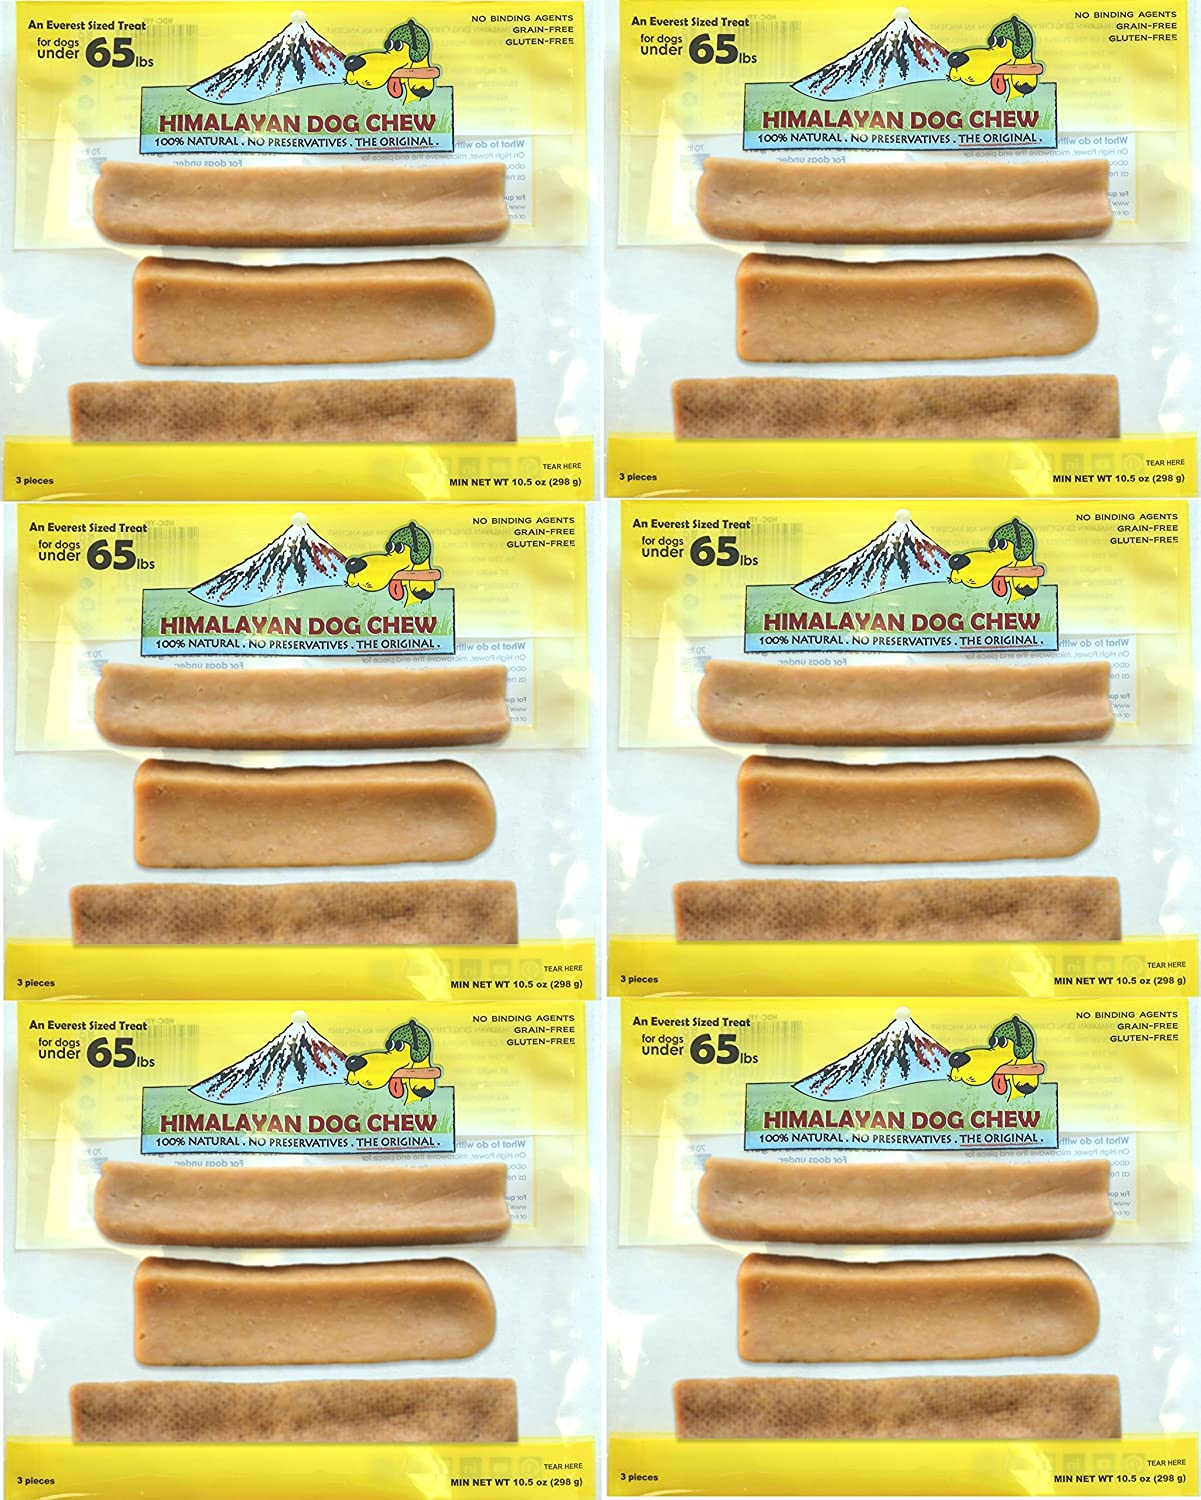 FRESH HIMALAYAN DOG CHEW 3 PIECE VALUE PACK LARGE 10.5 OZ HEALTHY NATURAL LONG LASTING TREAT 6 Pack